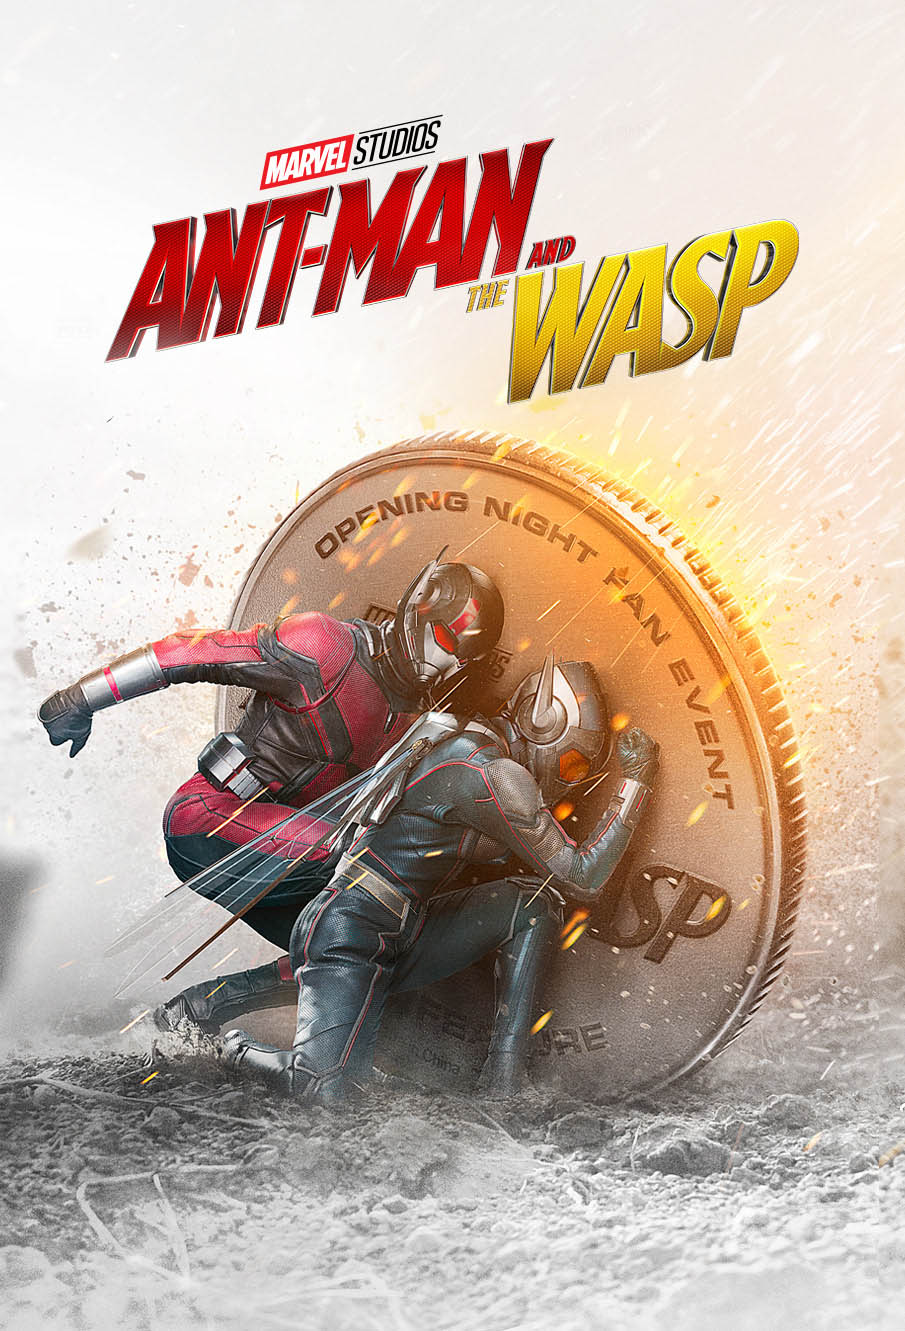 movie poster designs ideas ant man wasp by paul